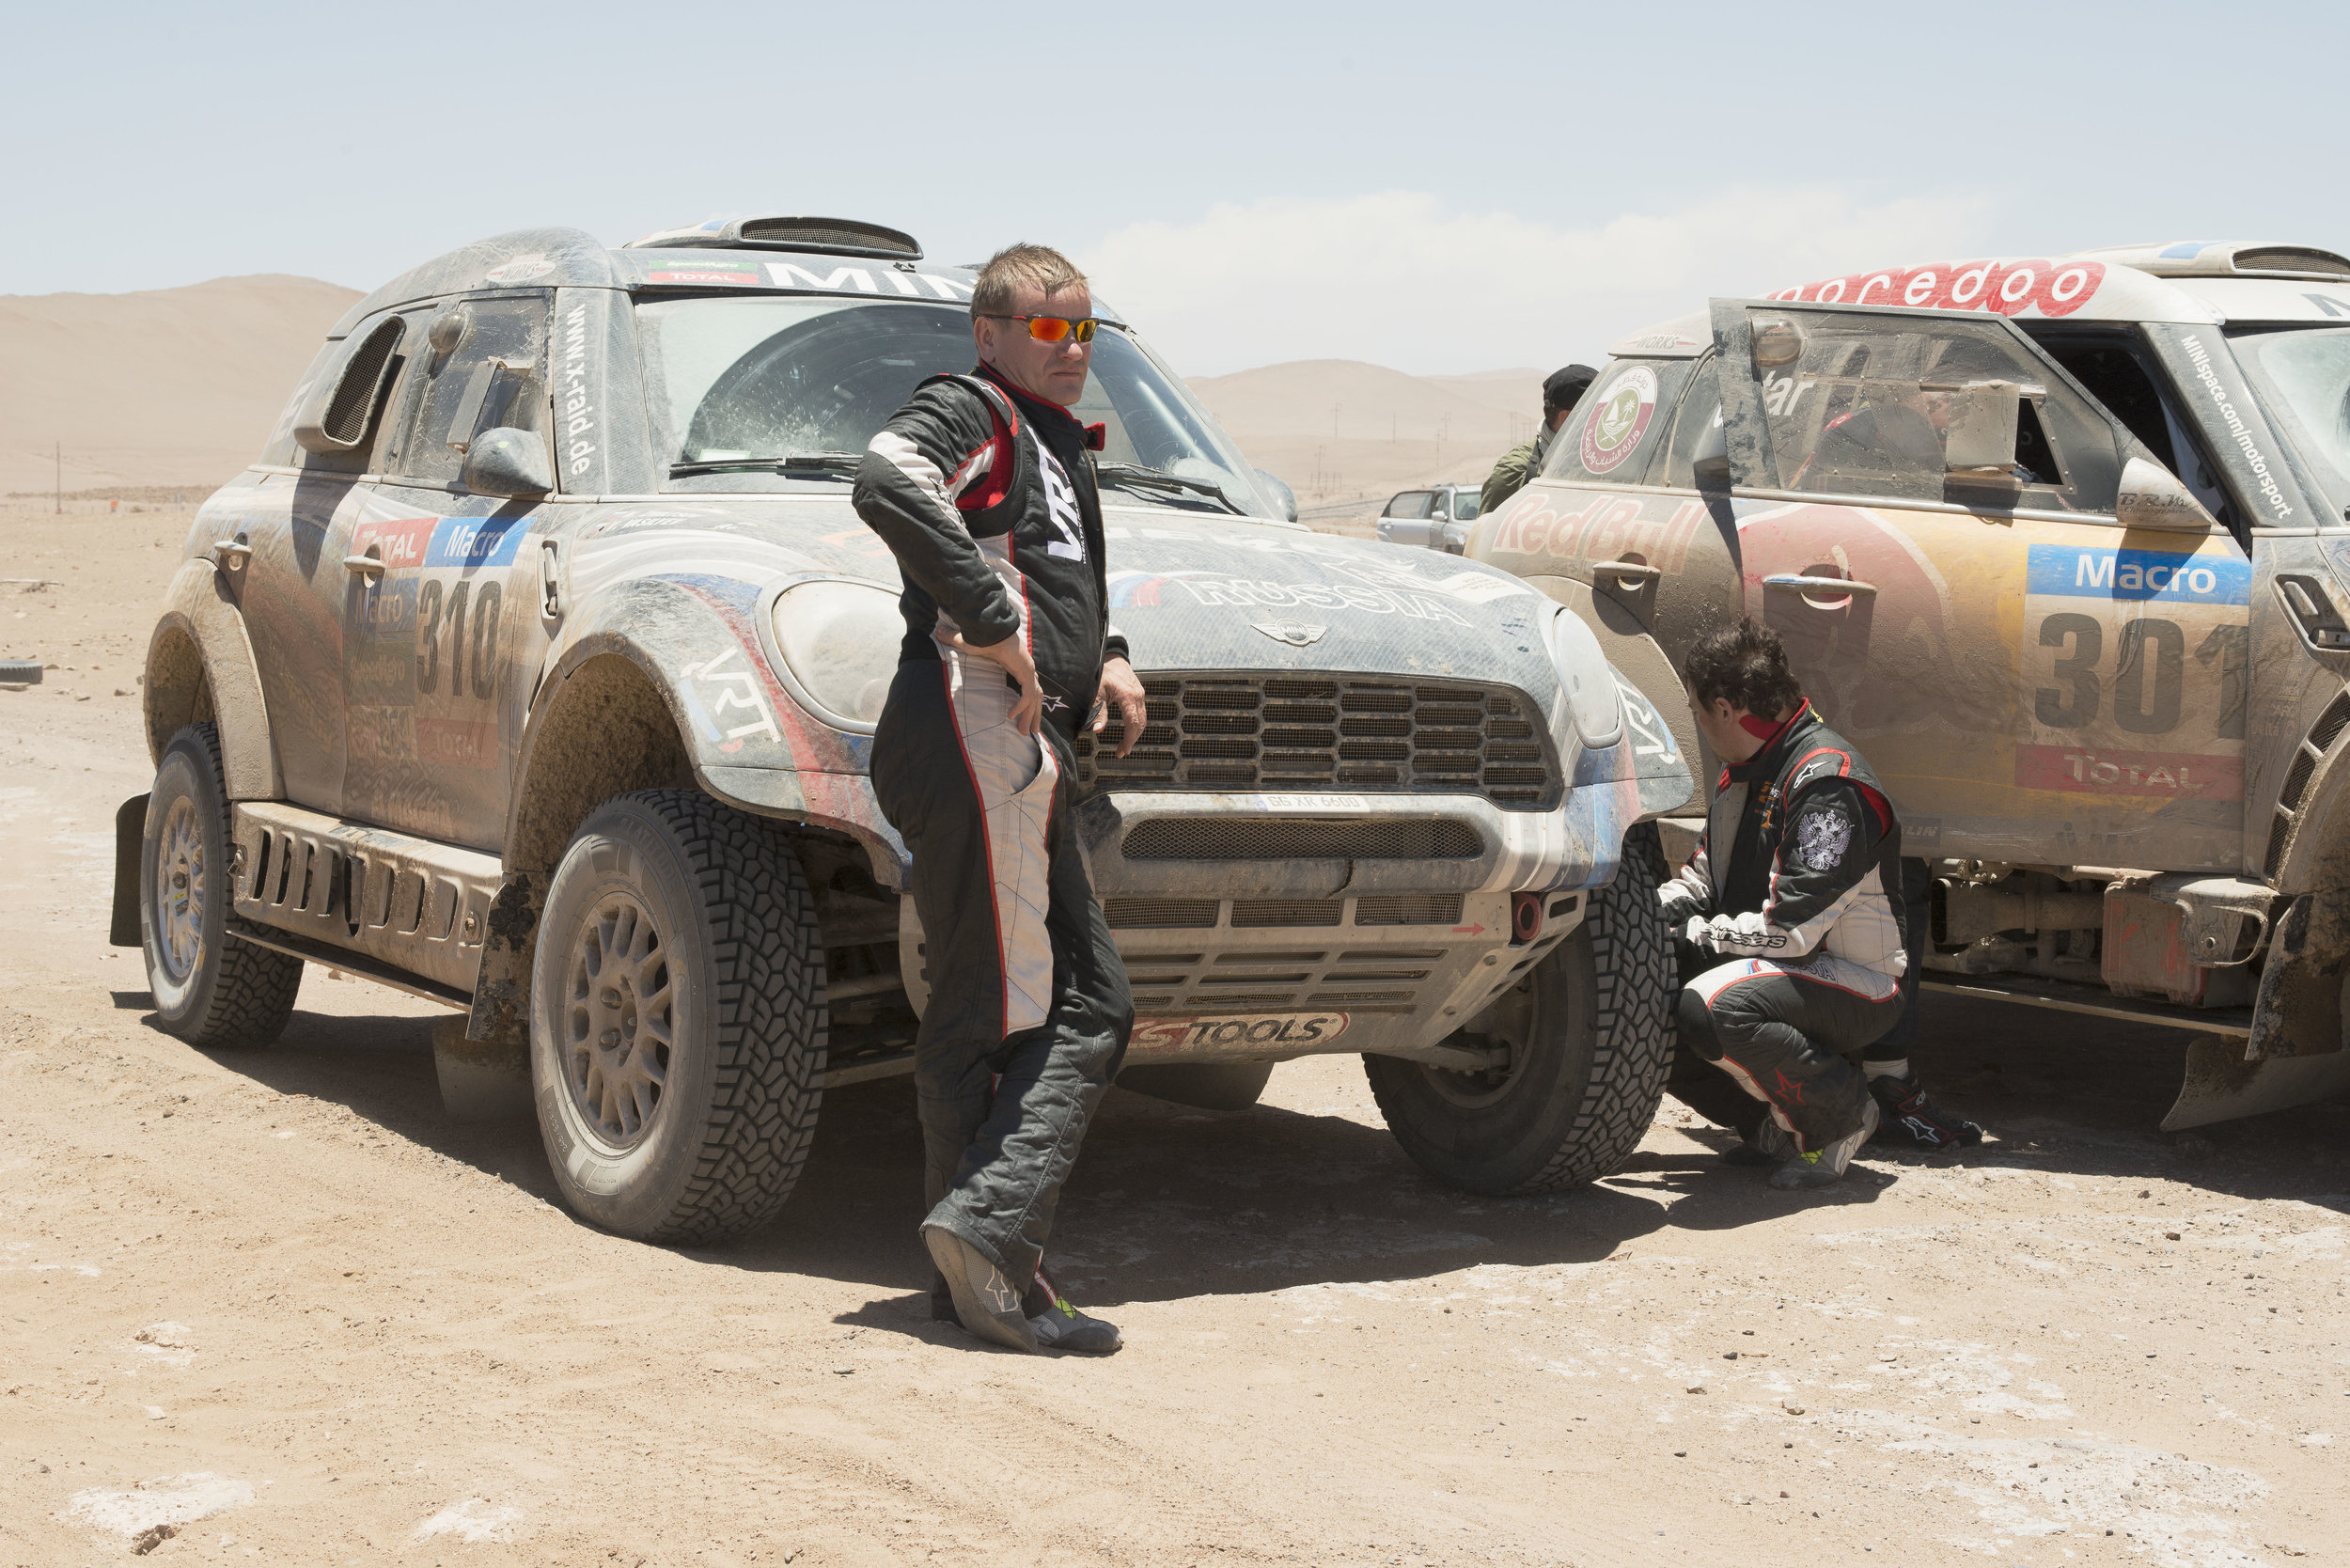 The Paris / Dakar Auto Rally, near Iquieque, Chile